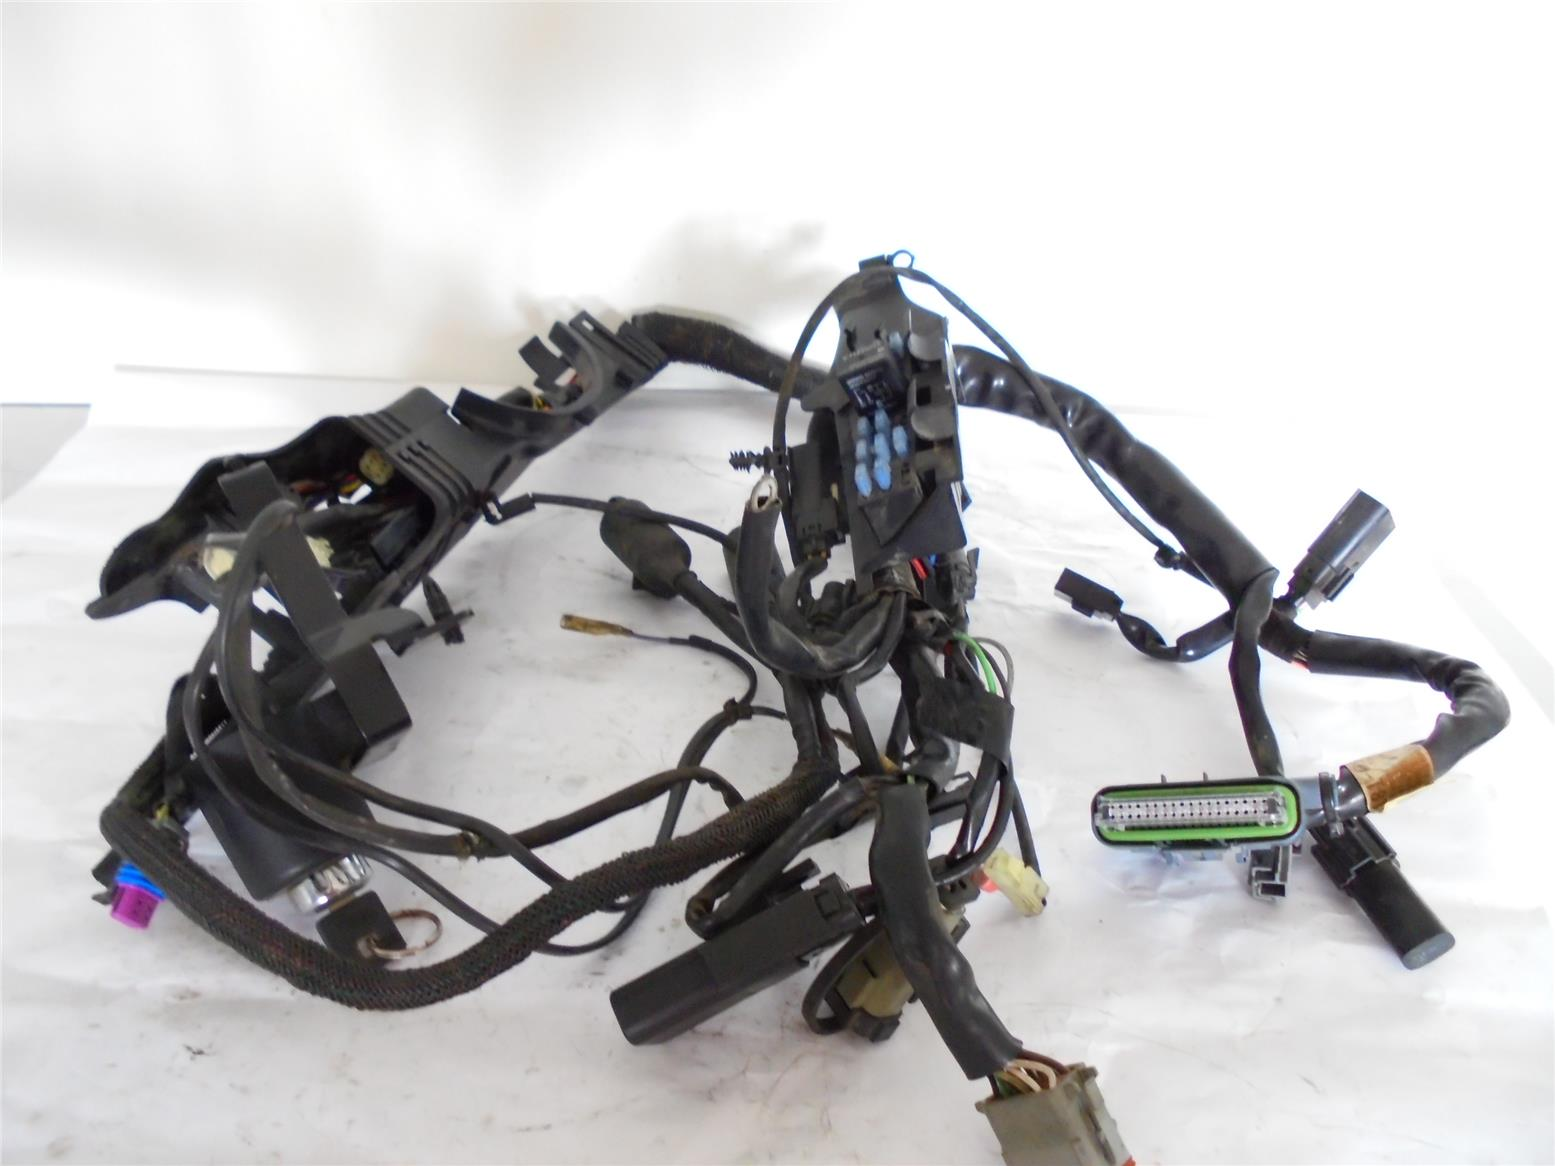 HARLEY DAVIDSON SPORTSTER WIRING HARNESS on